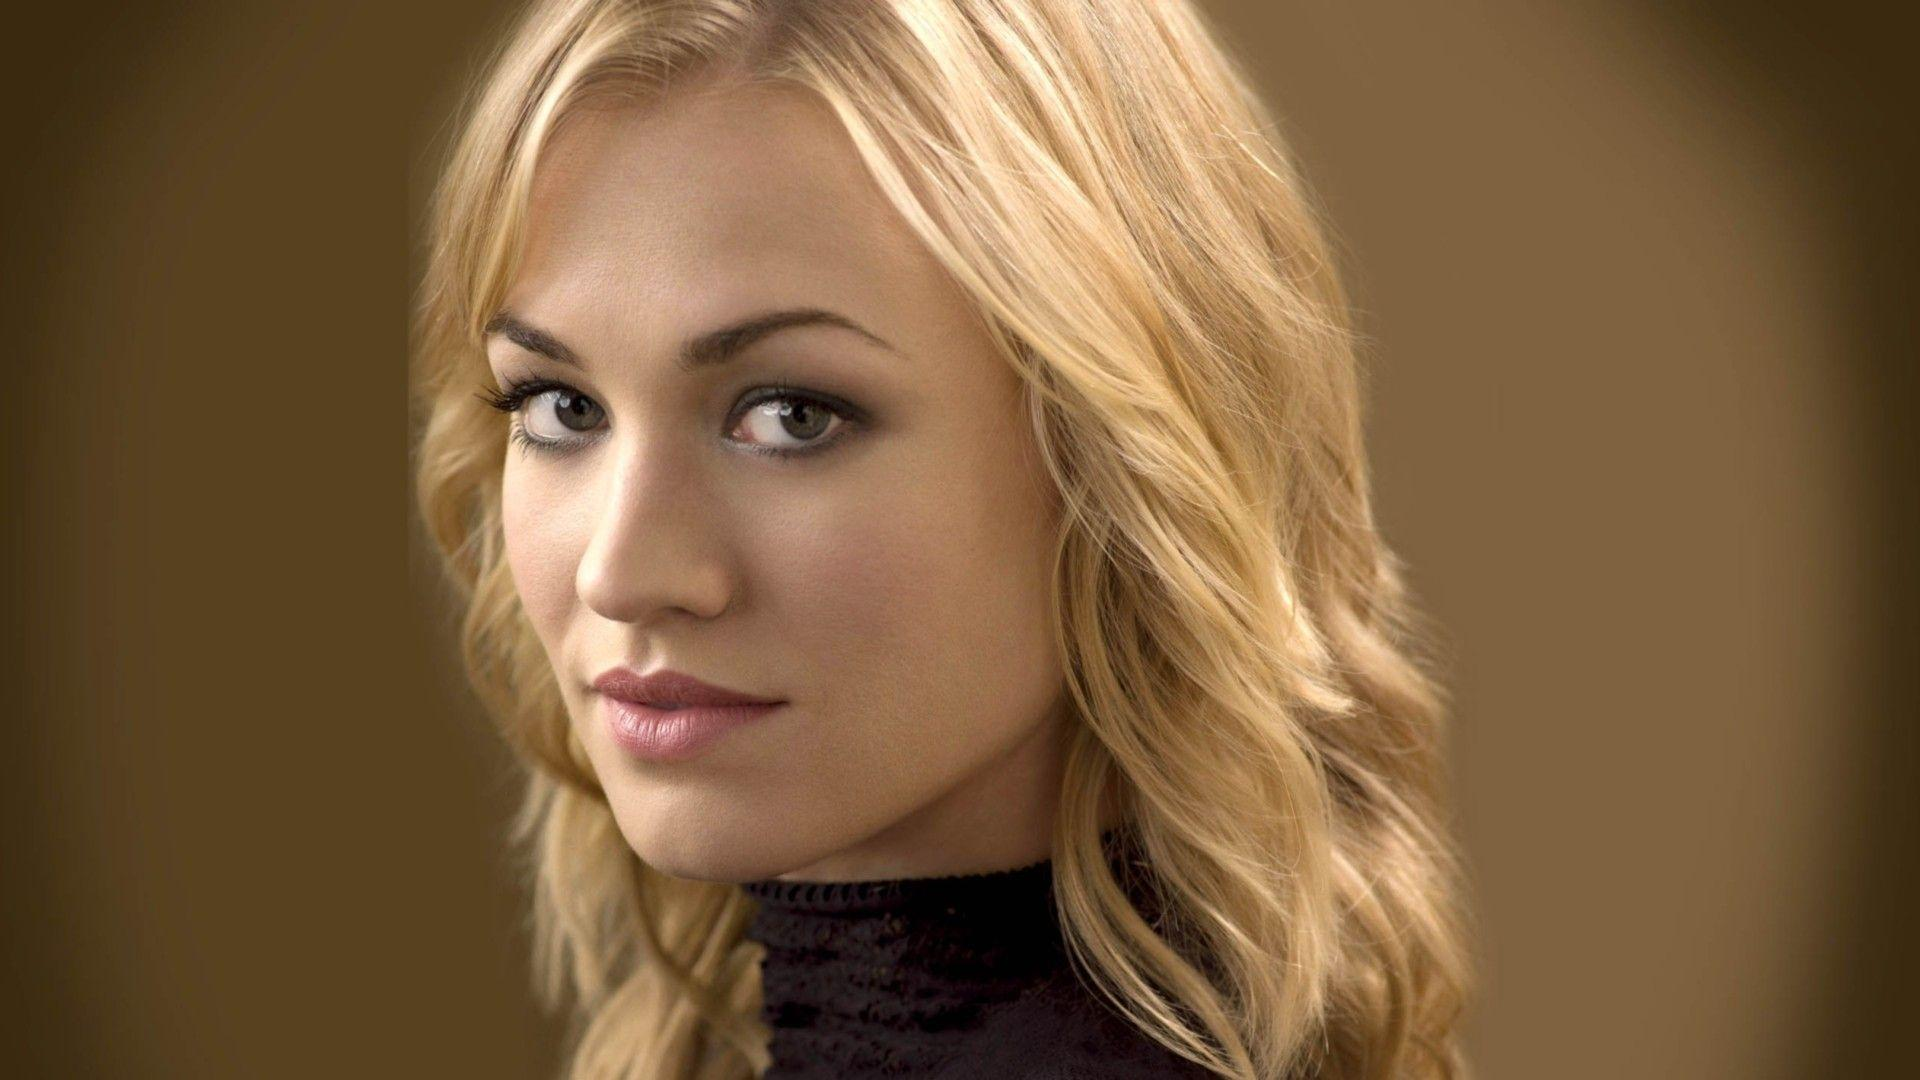 Yvonne Strahovski Wallpapers HD - Wallpaper Cave